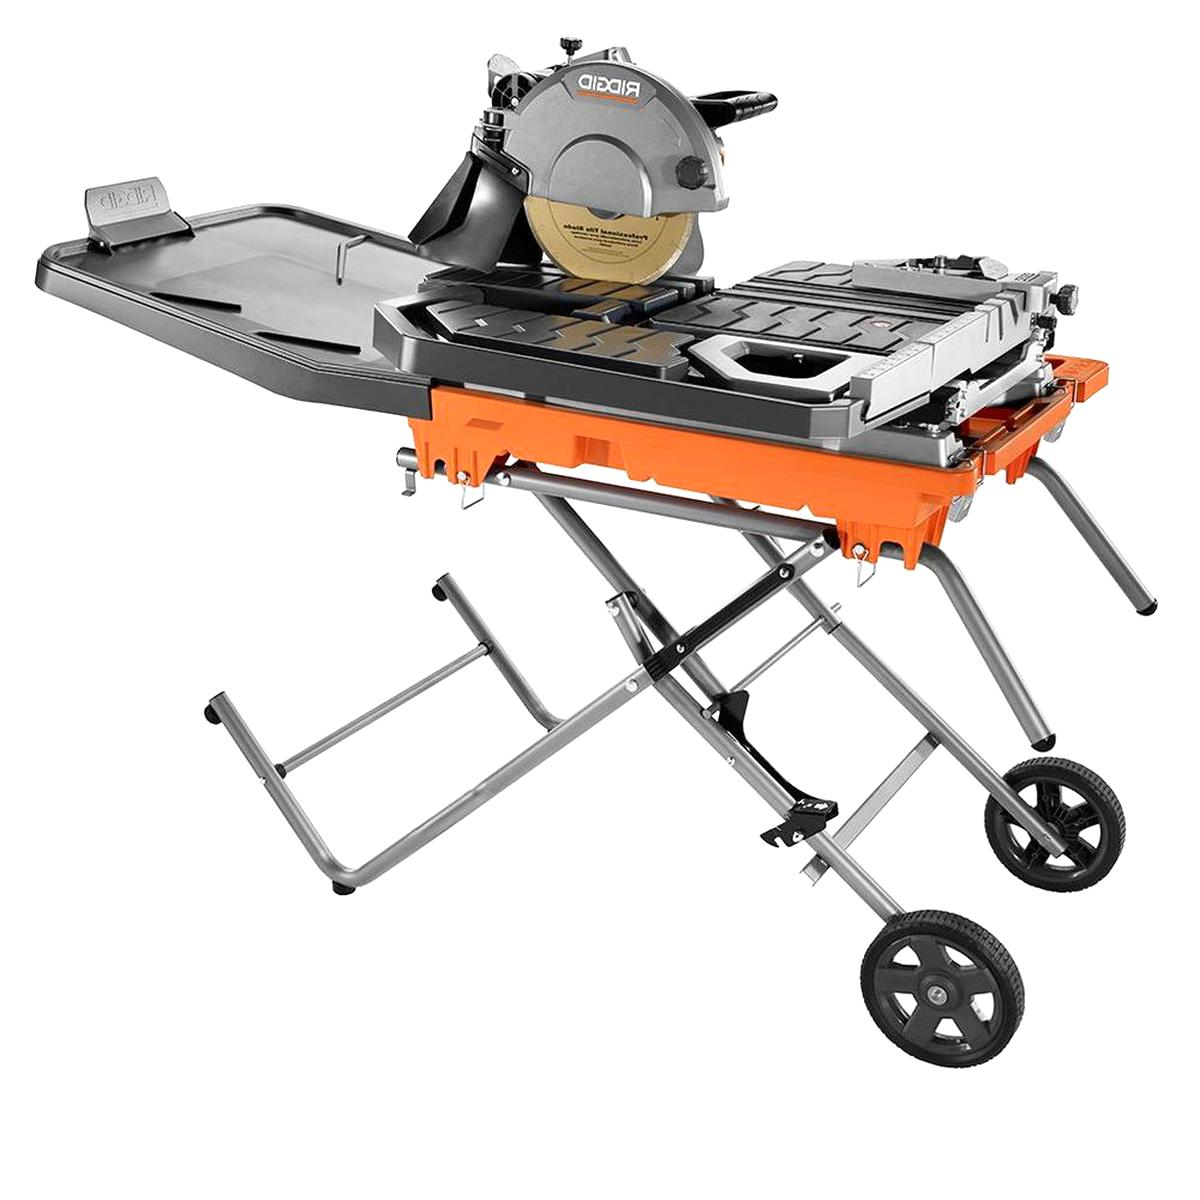 wet saw for sale compared to craigslist